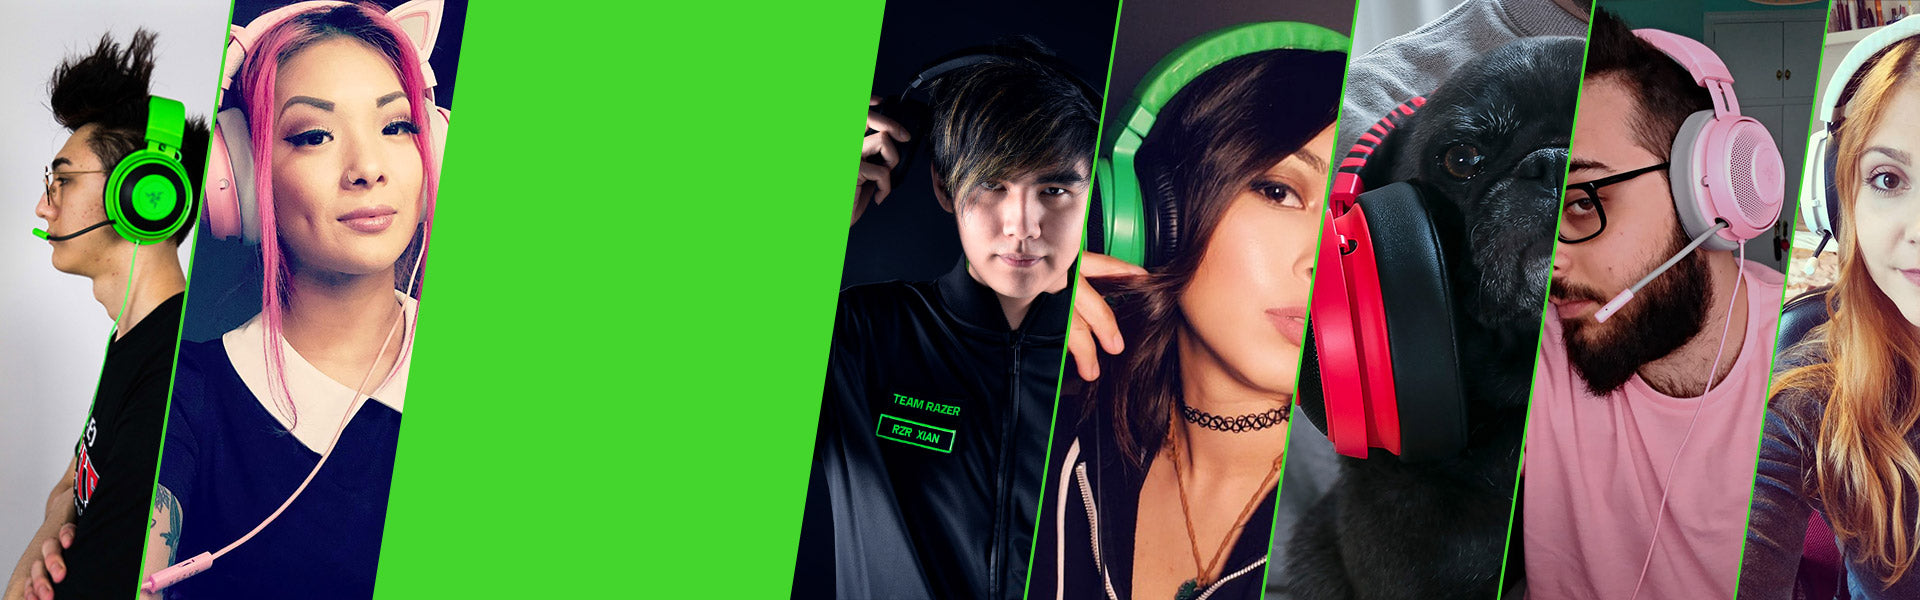 THE ICONIC GAMING HEADSET HAS EVOLVED - Since its inception, the Razer Kraken has built a reputation as a cult classic within the gaming community. It made its mark as a staple at countless gaming events, conventions, and tournaments. We've now improved the features of this crowd favorite to not just give its audio quality a boost but also make it more comfortable so you can game all day with the headset you love. This is the new Razer Kraken.